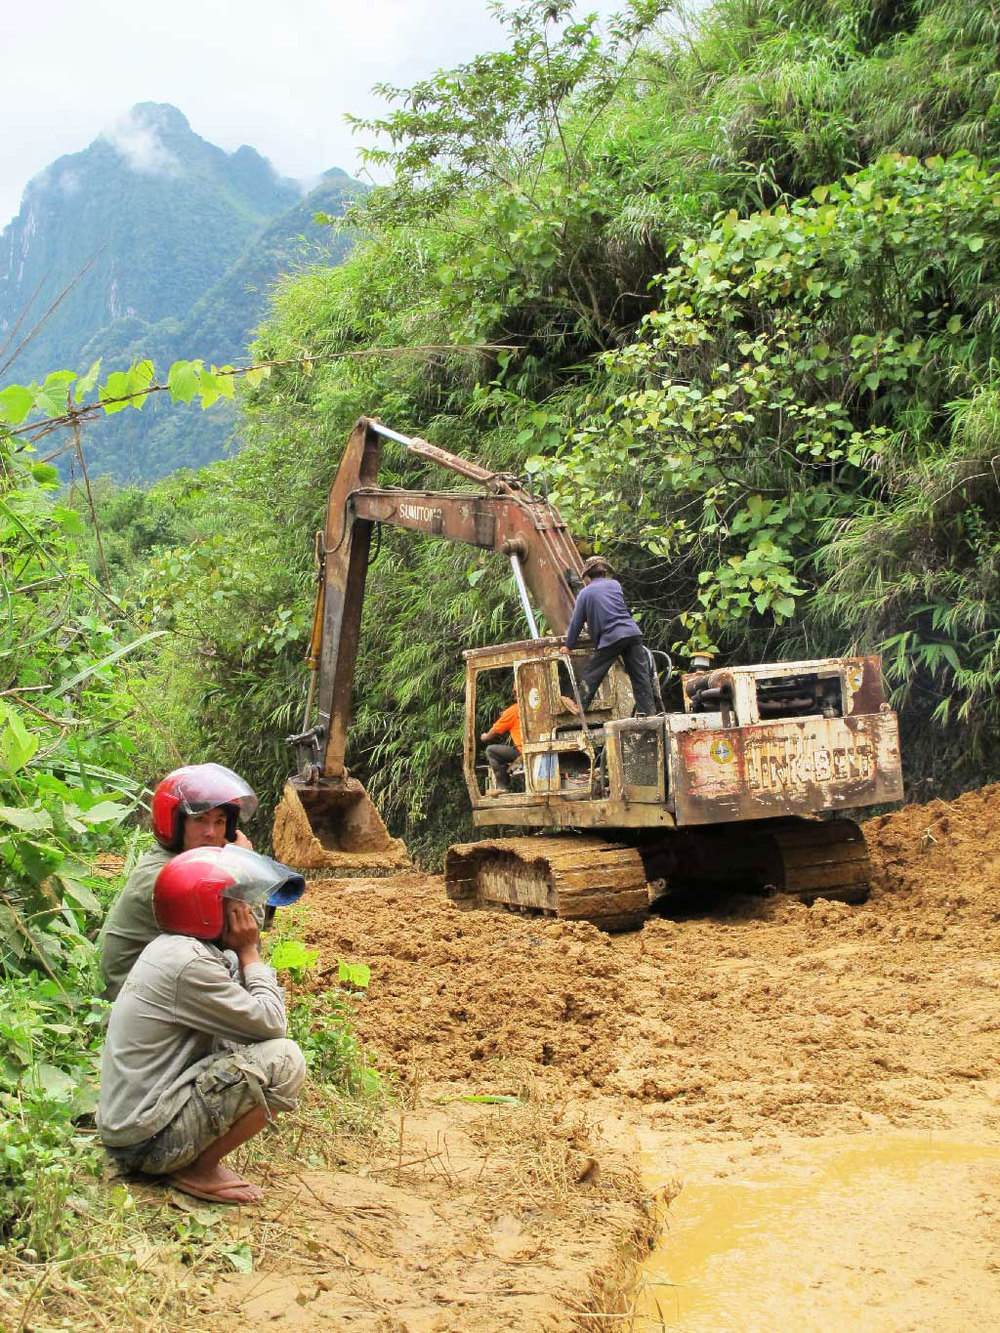 Cleaning the road with a bulldozer while two drivers waiting in #laos / sergivich.com